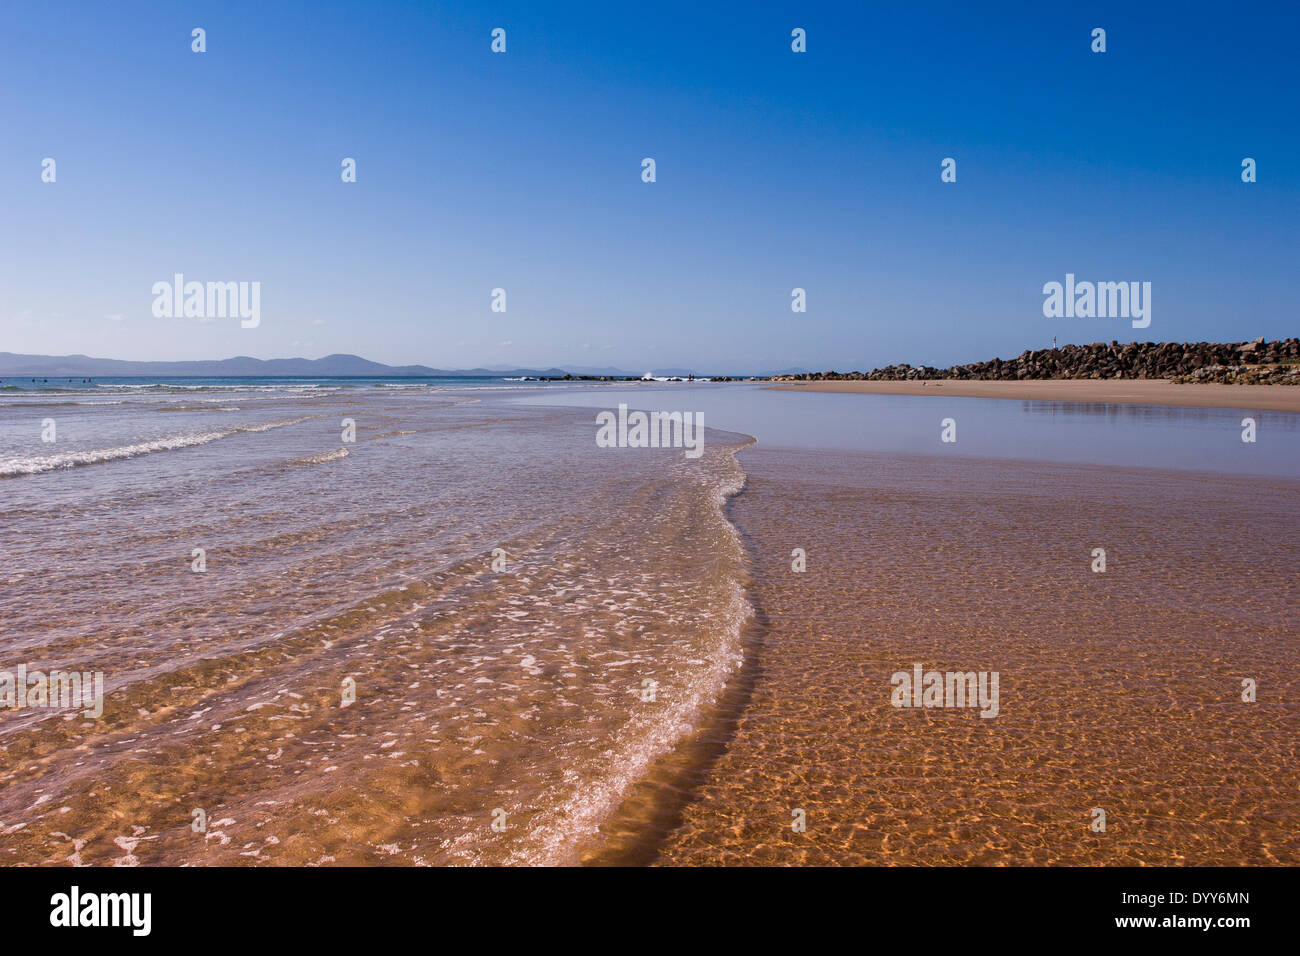 low angle view across tidal flats at the beach edge with gentle wave, distant hills, and ocean rock pier on sunny blue sky day - Stock Image